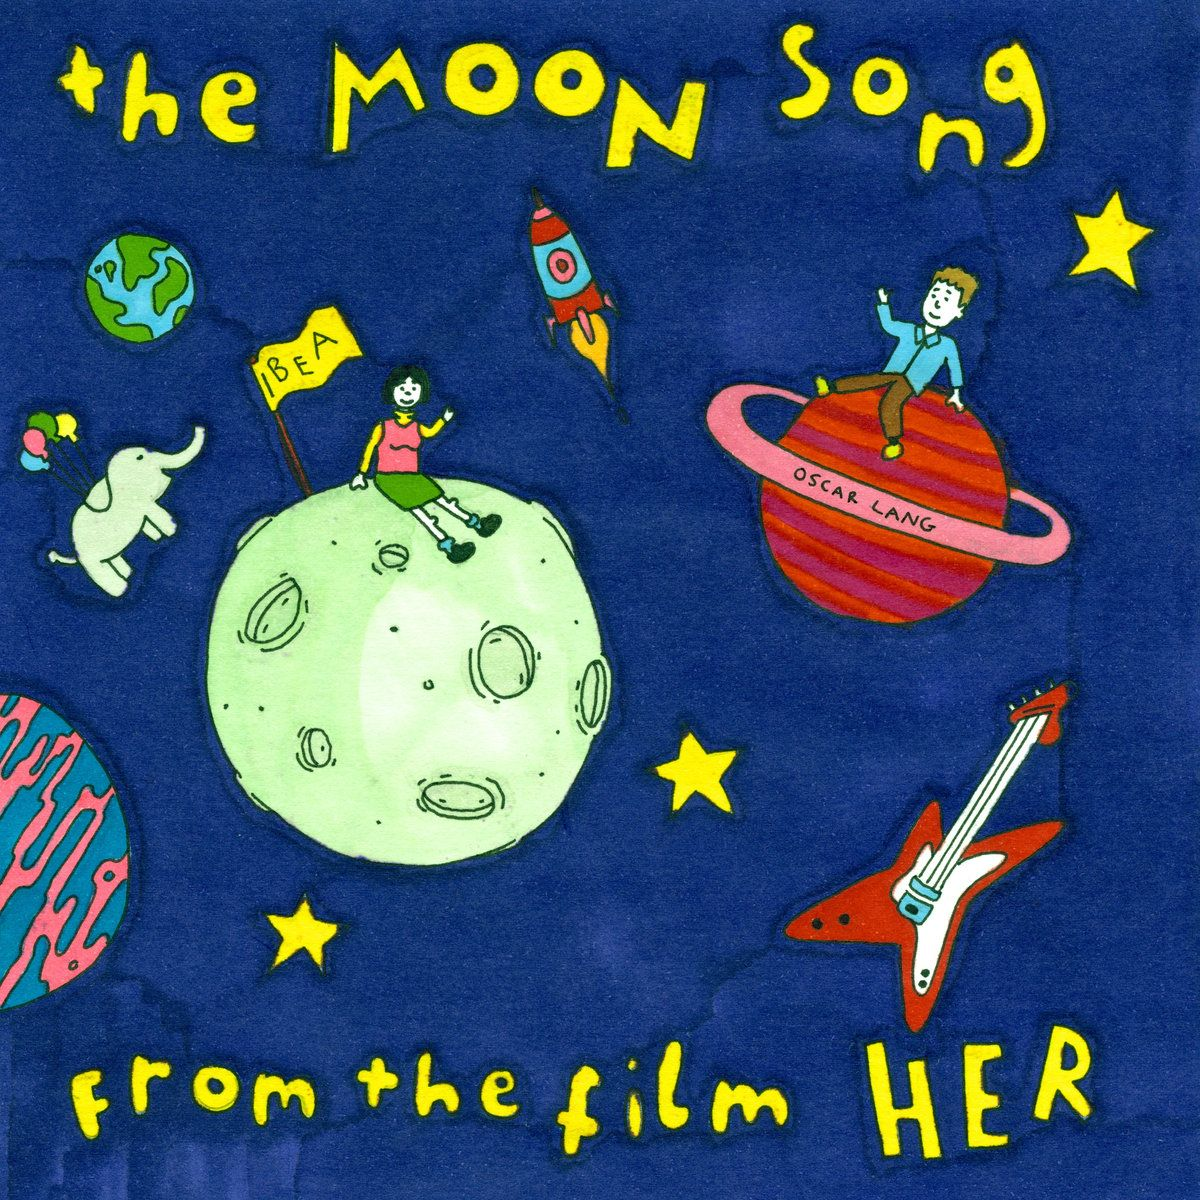 Pin by haylee reed on art moon song music album cover